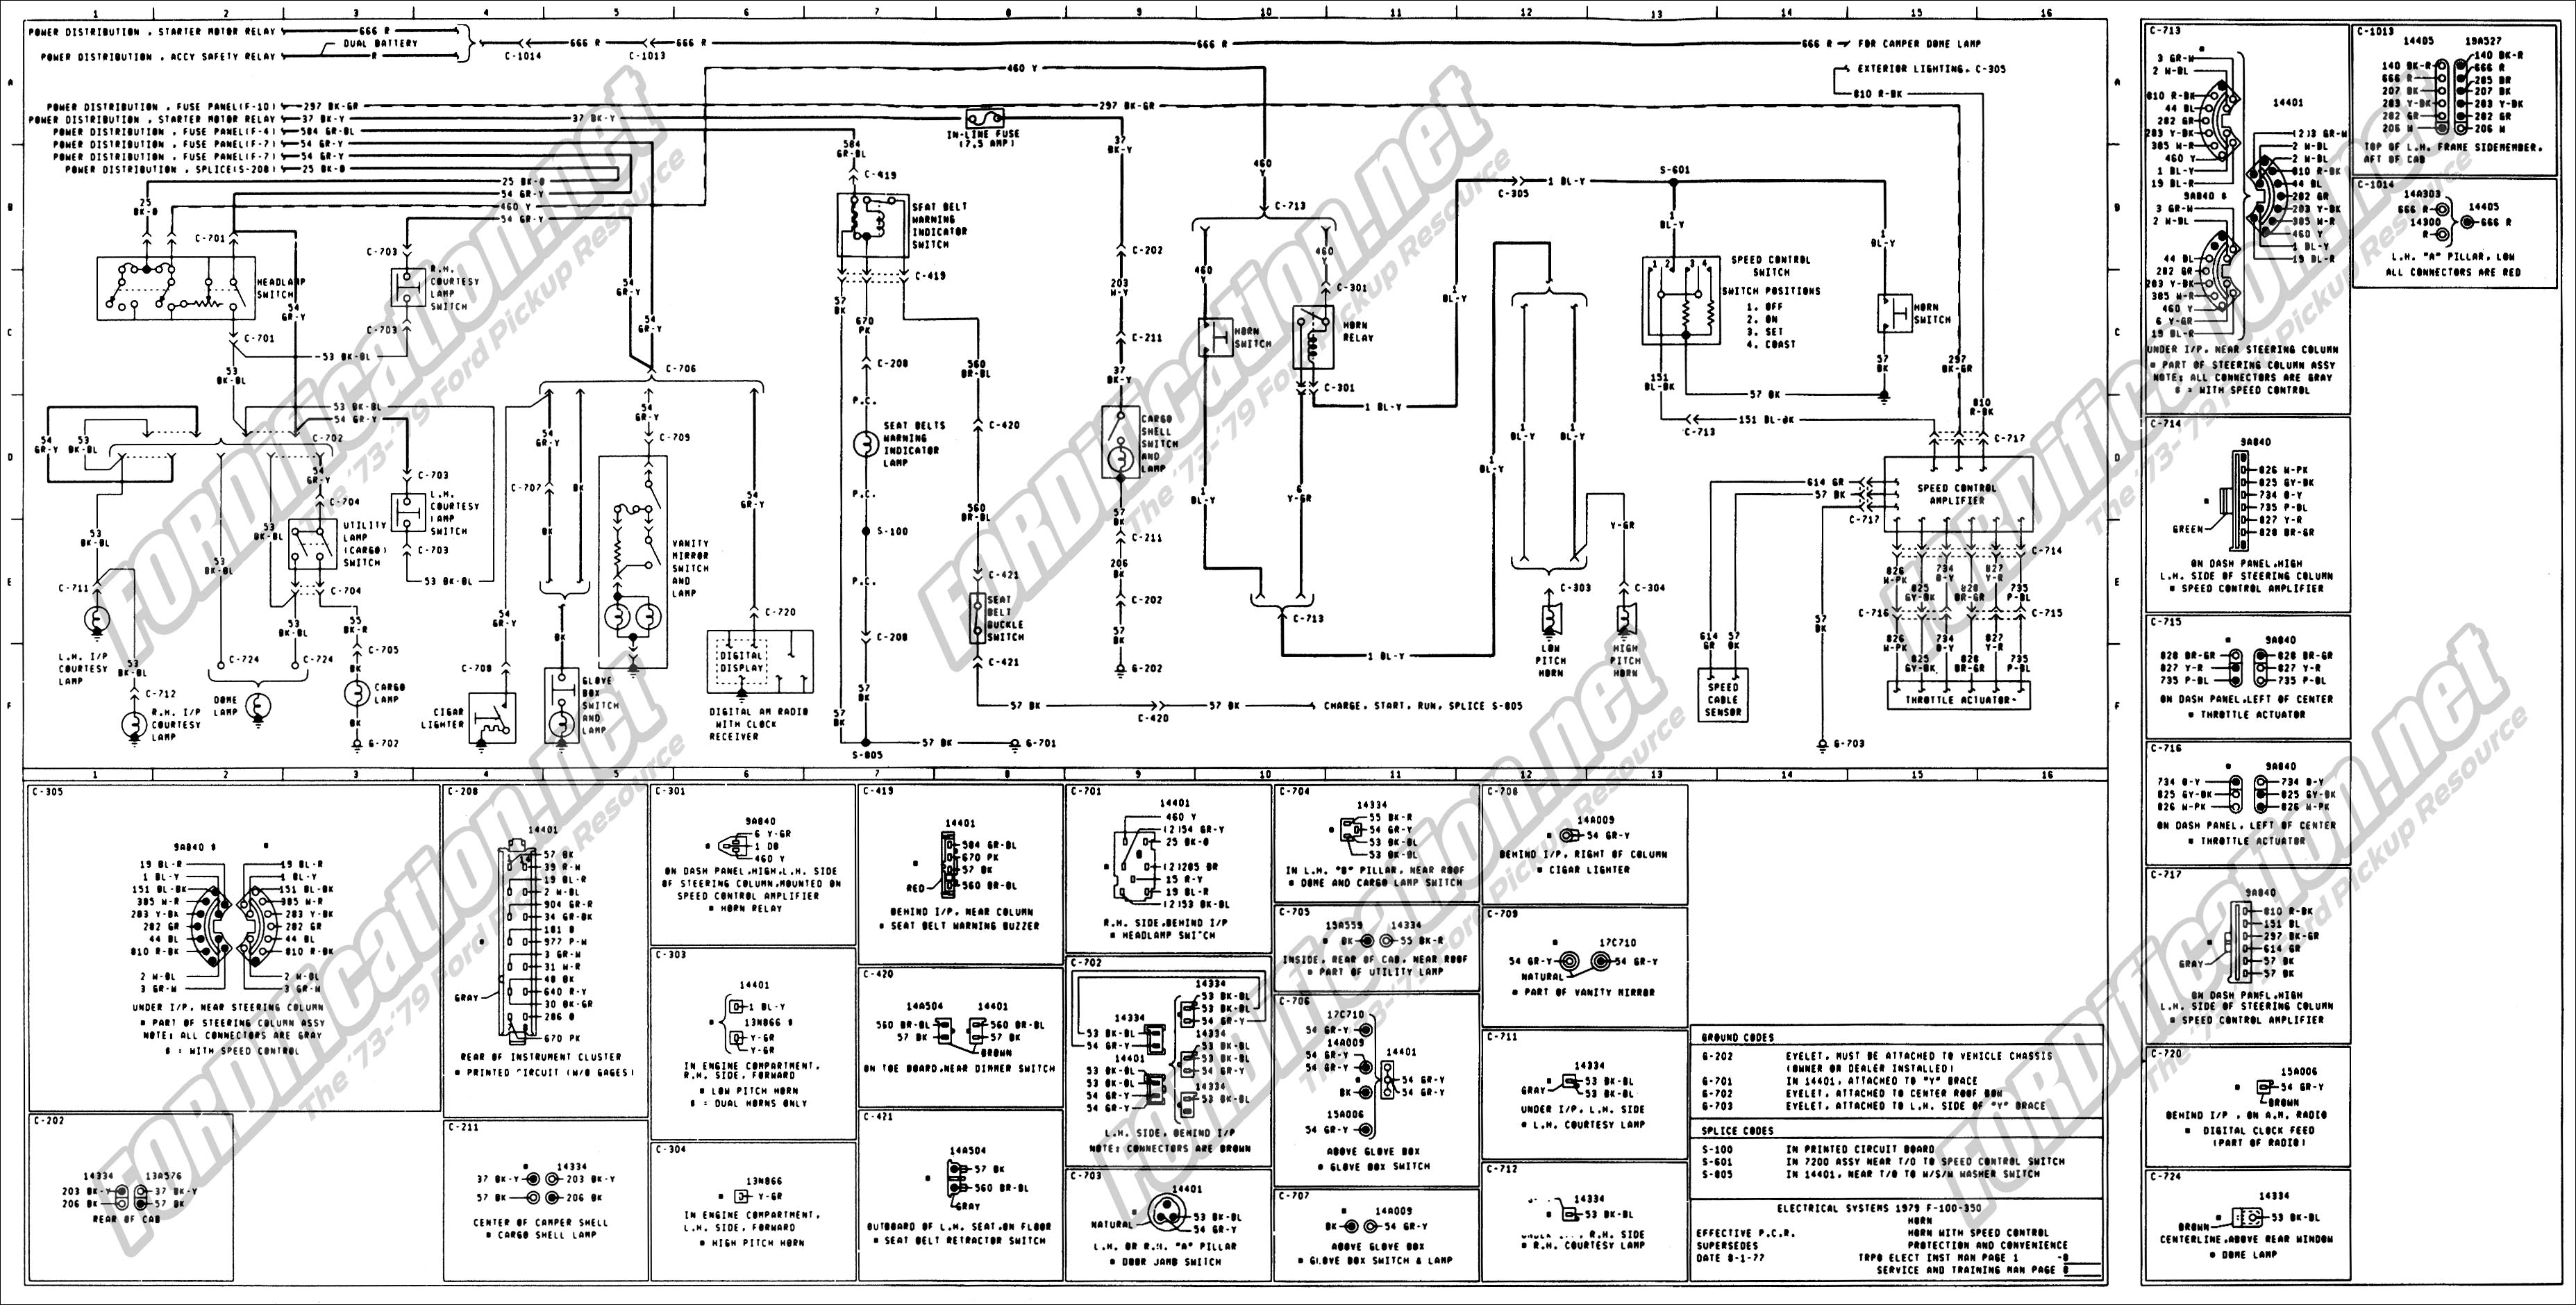 1977 Ford Truck Tail Light Wiring Diagram Data Trailer 1973 1979 Diagrams Schematics Fordification Net Dash